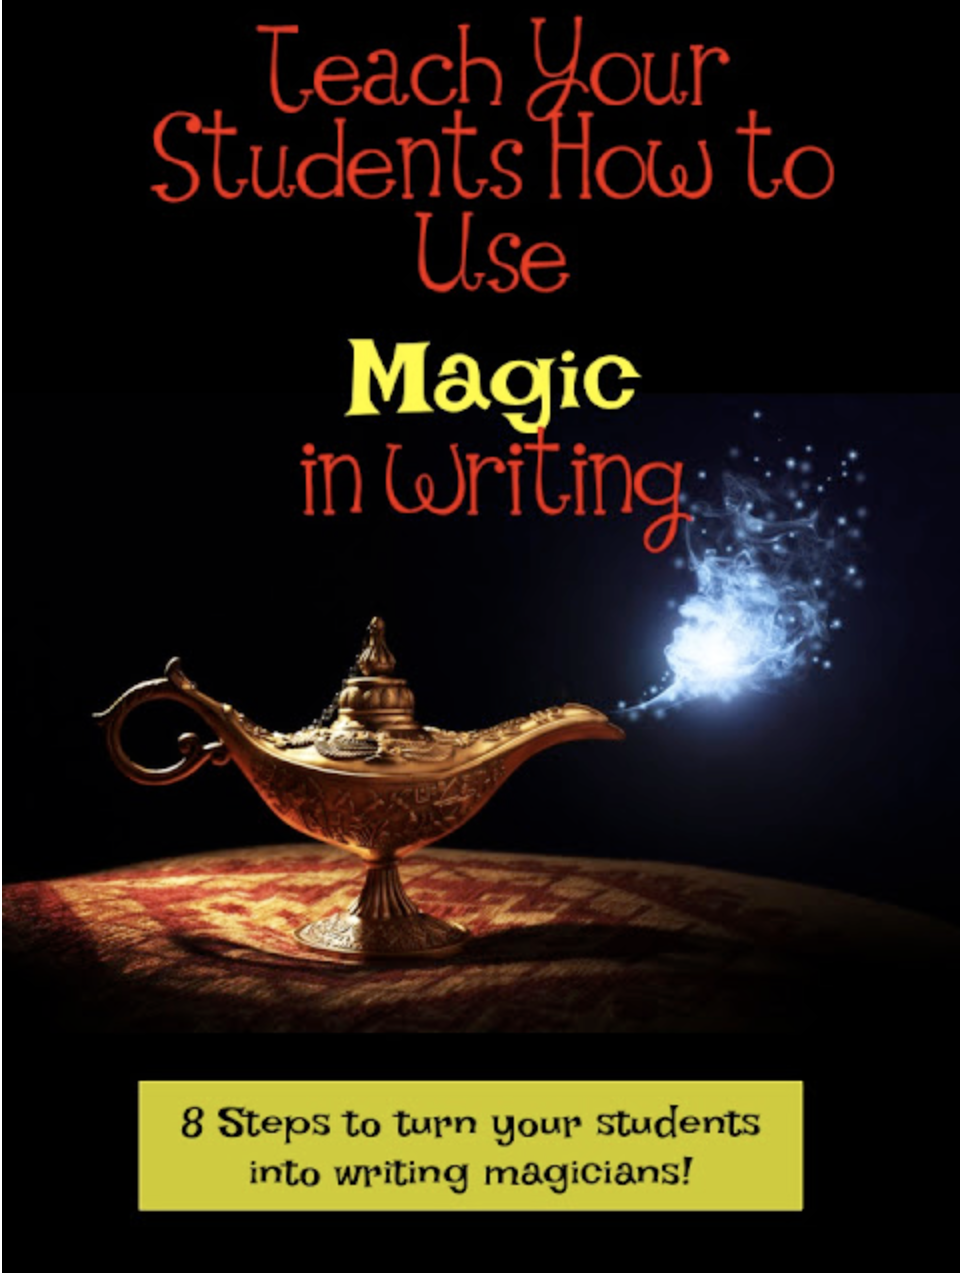 If the world were a village of 100 people lesson plan - If You Would Like To Read My Other Post That Focuses On Using Magic In Writing Check Out